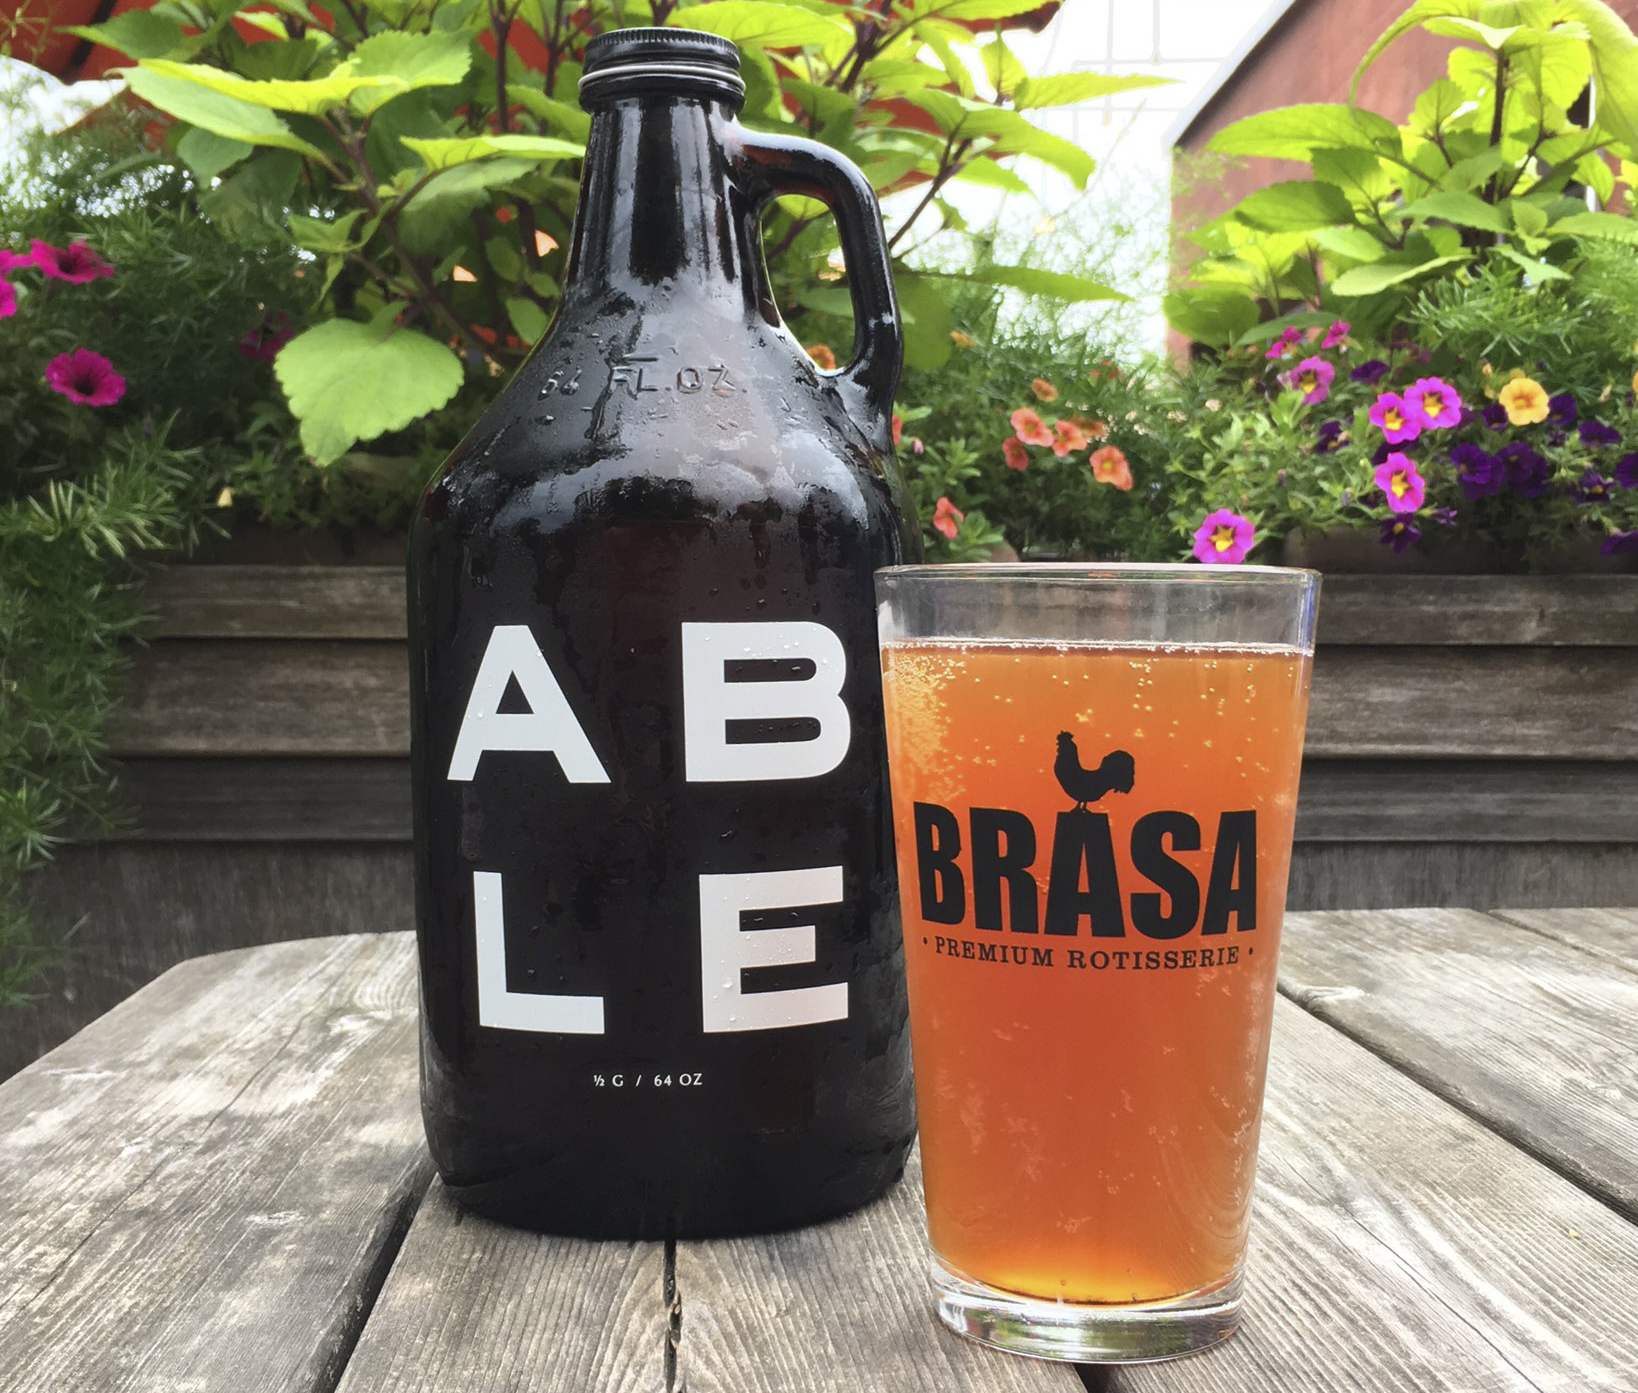 Able Seedhouse + Brewery's Easy Tiger, a special beer brewed for Brasa's 10-year anniversary // Photo by Joseph Alton